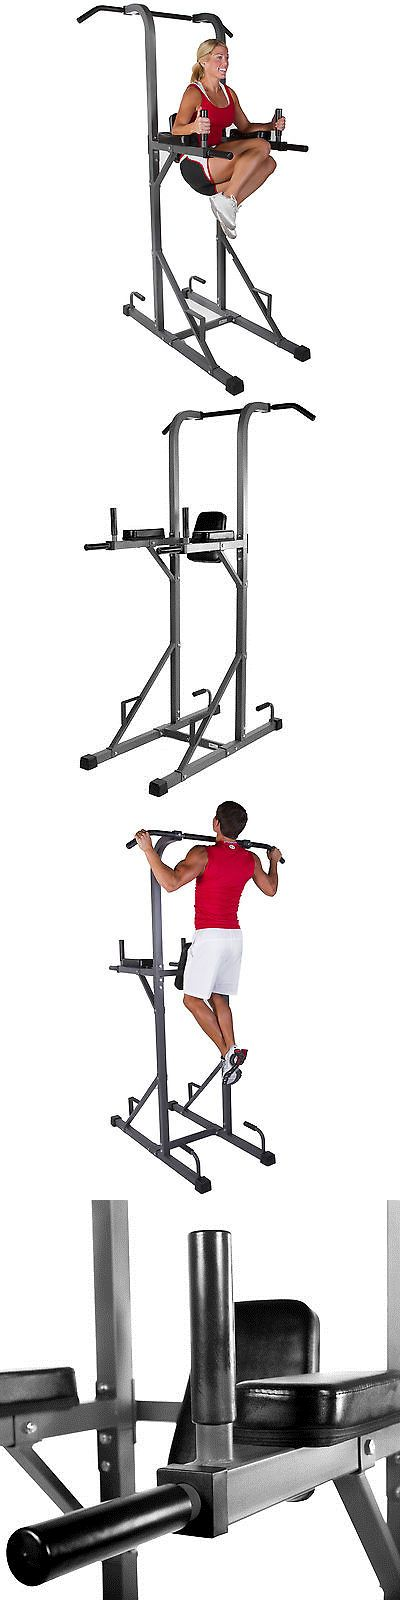 Ideas about dip station on pinterest home gym